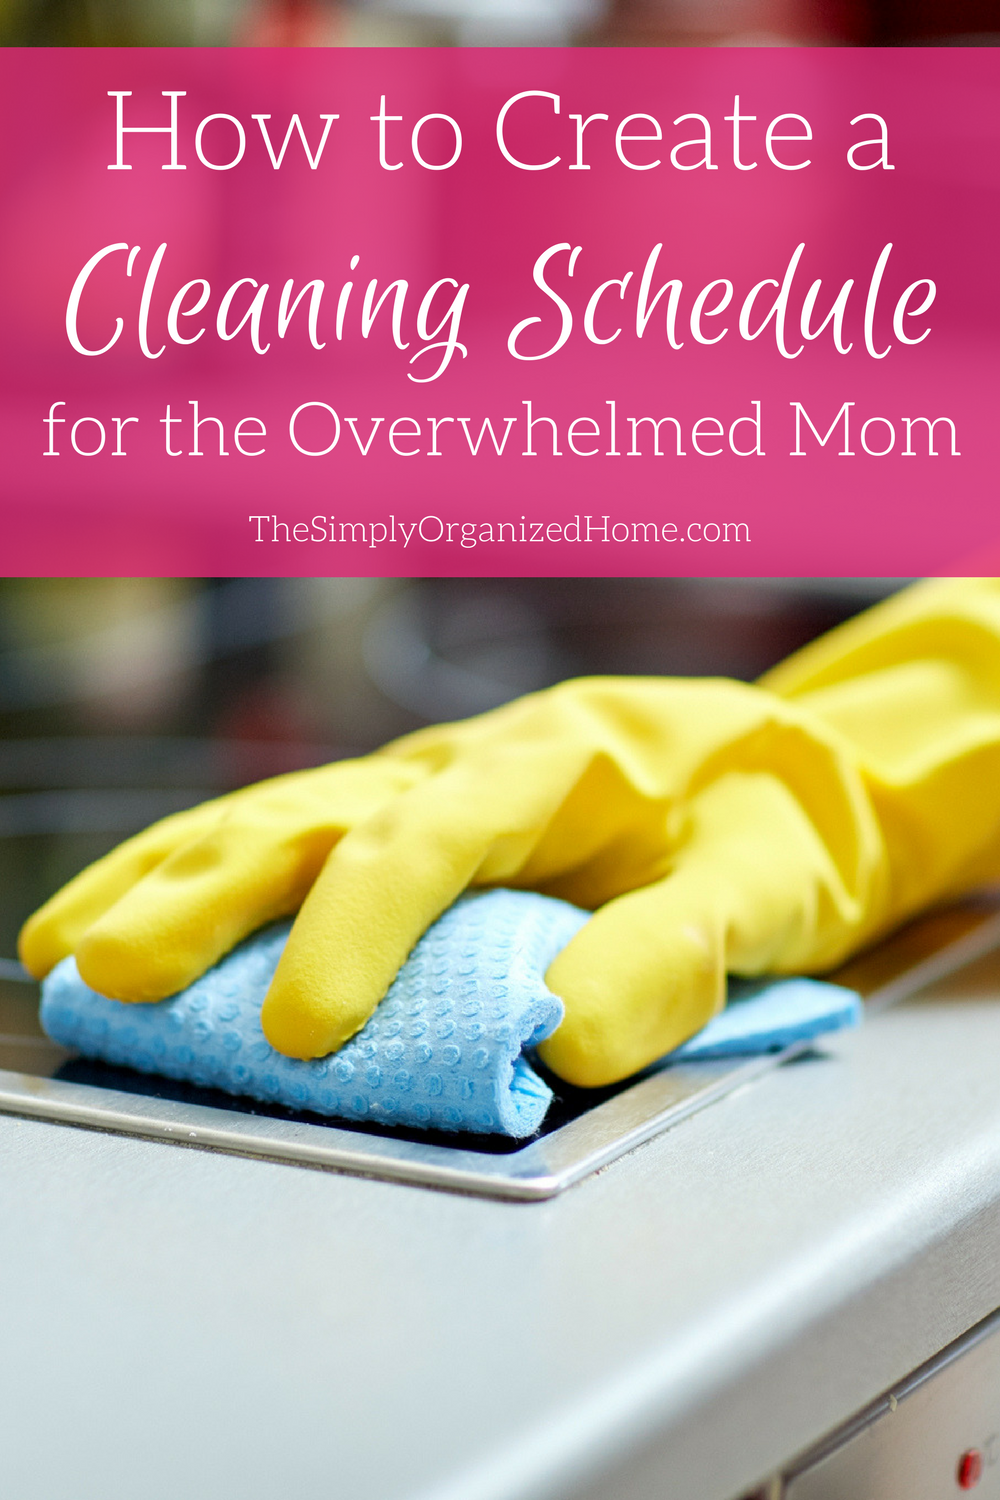 how to create a cleaning schedule for the overwhelmed mom